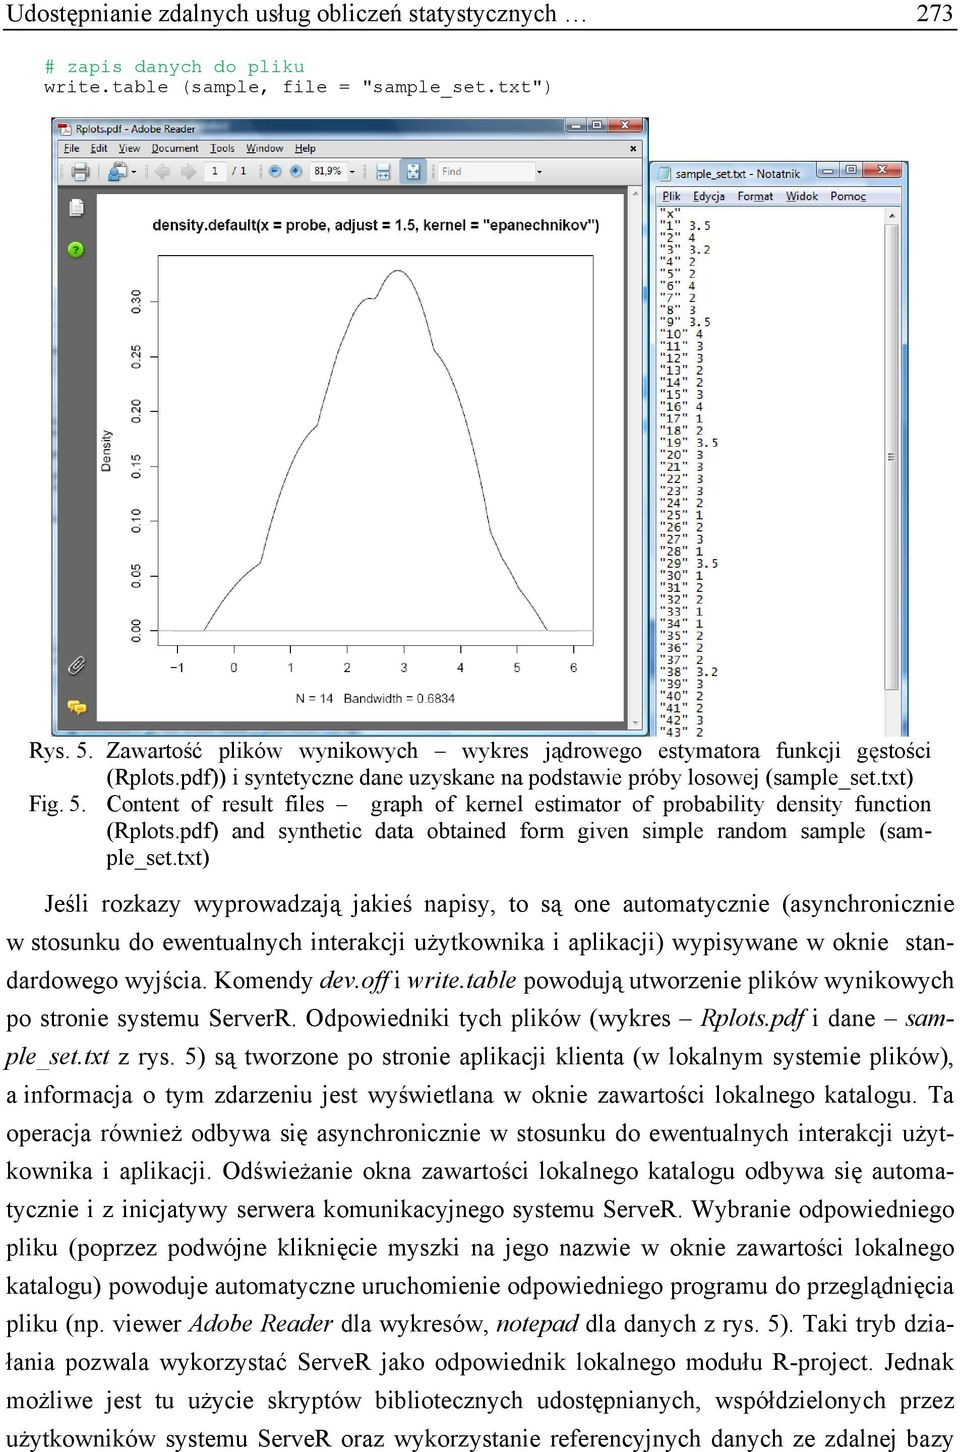 Content of result files graph of kernel estimator of probability density function (Rplots.pdf) and synthetic data obtained form given simple random sample (sample_set.